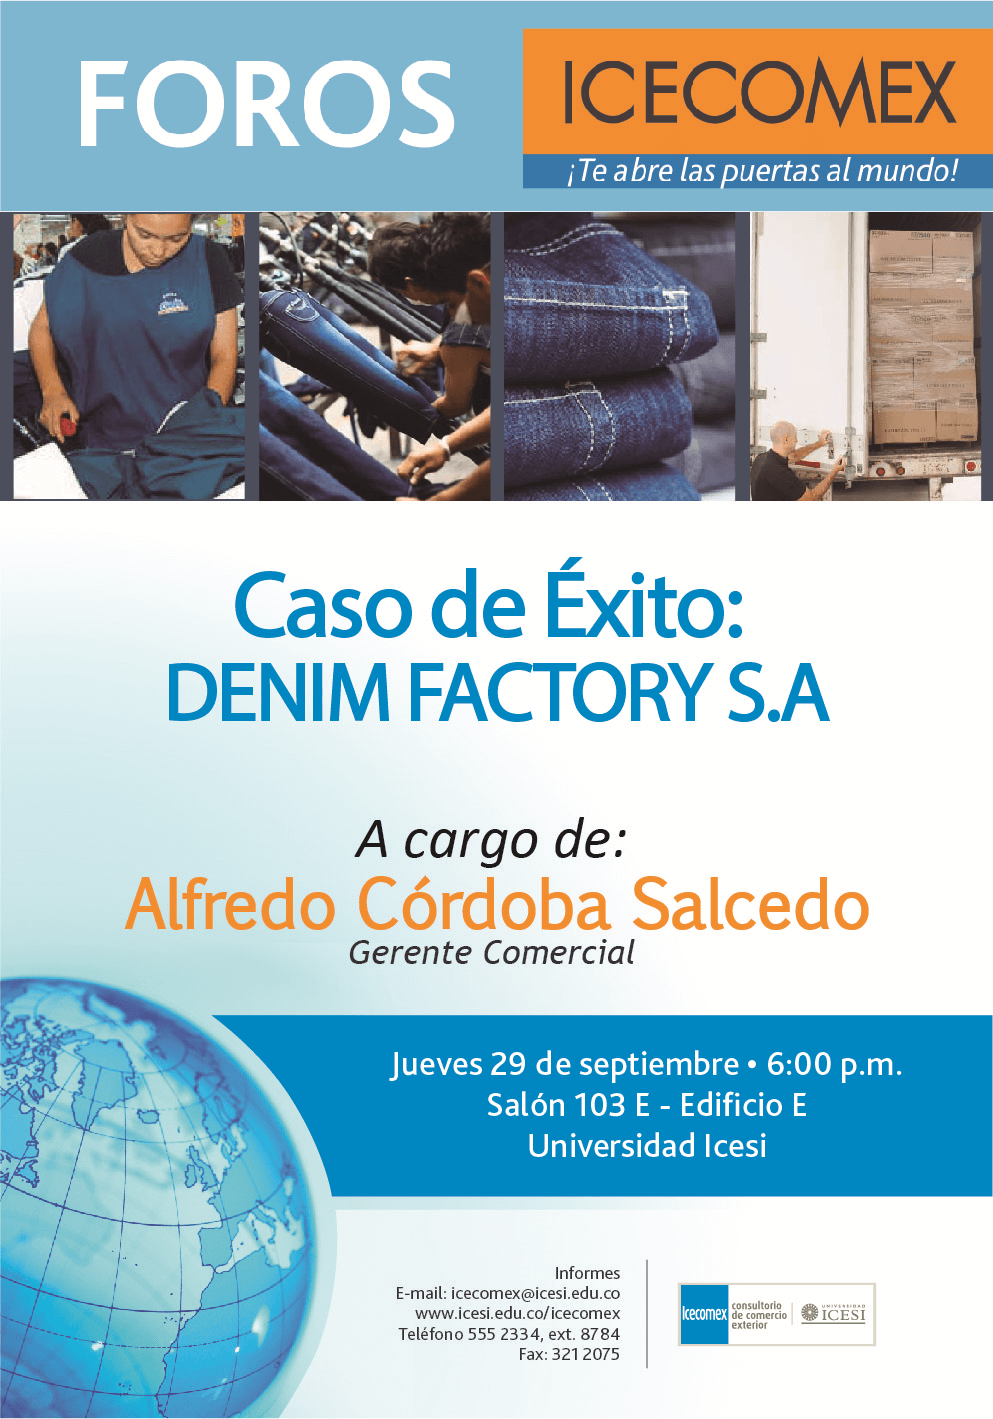 29.09.16 caso de xito Denim Factory SA